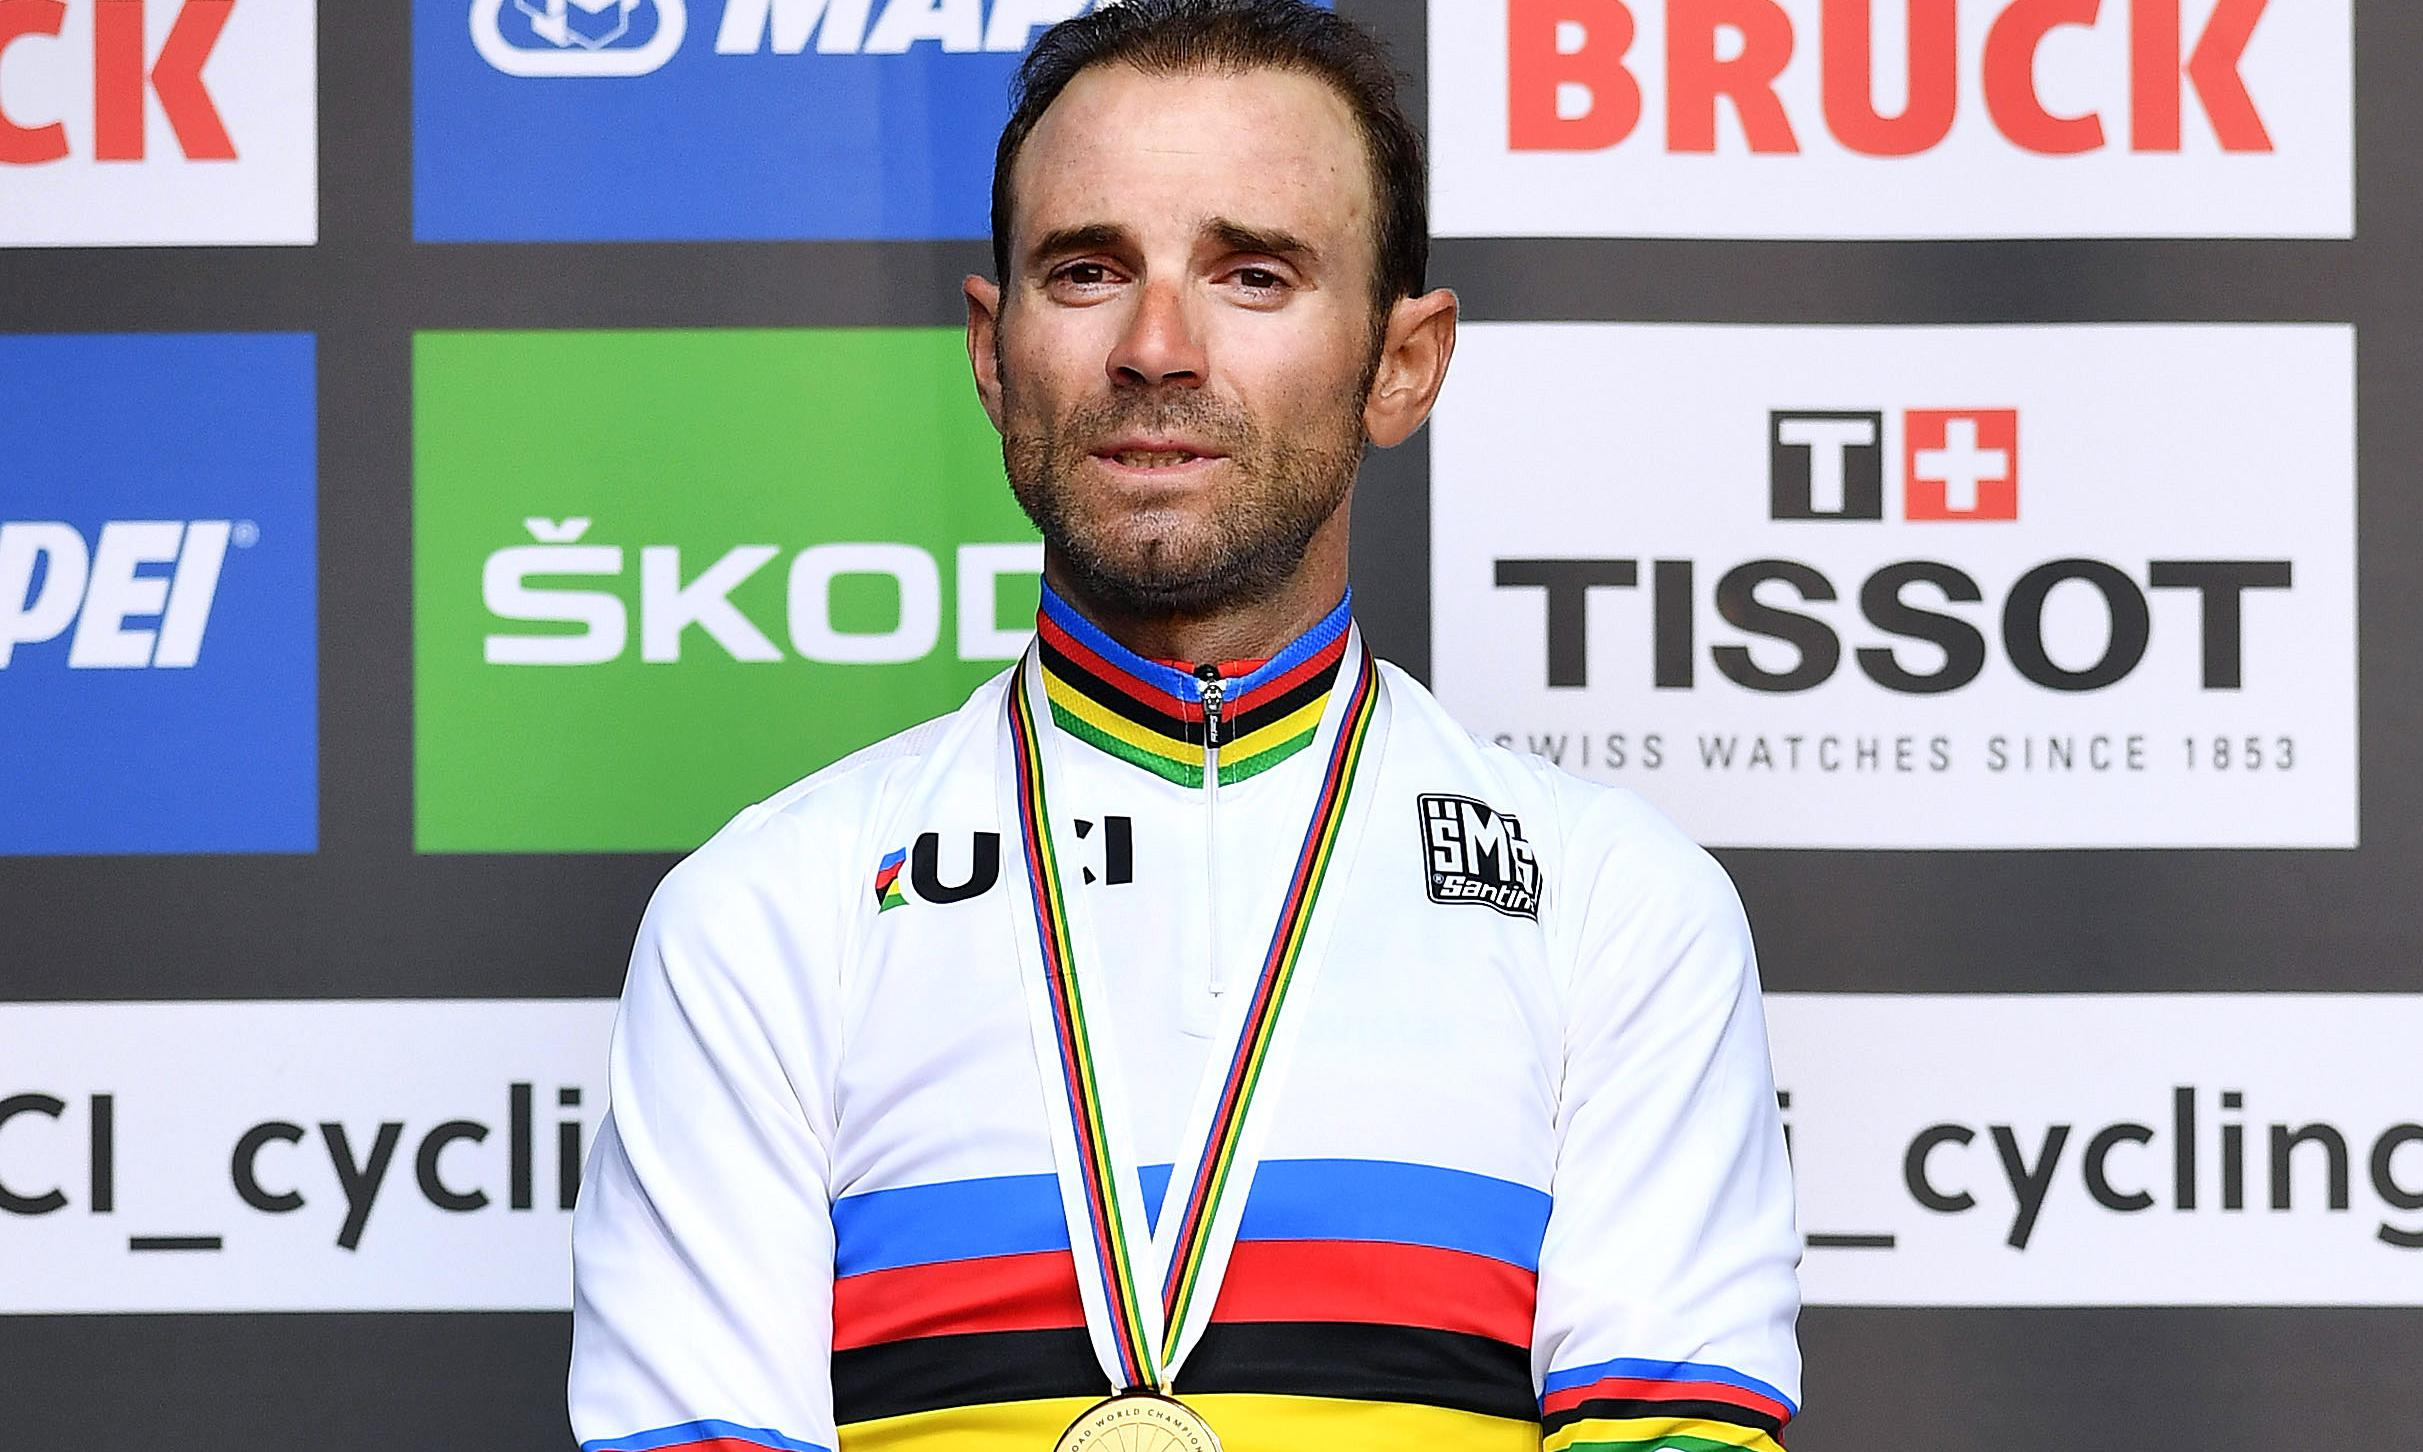 Evergreen Alejandro Valverde triumphs in Road World Championships